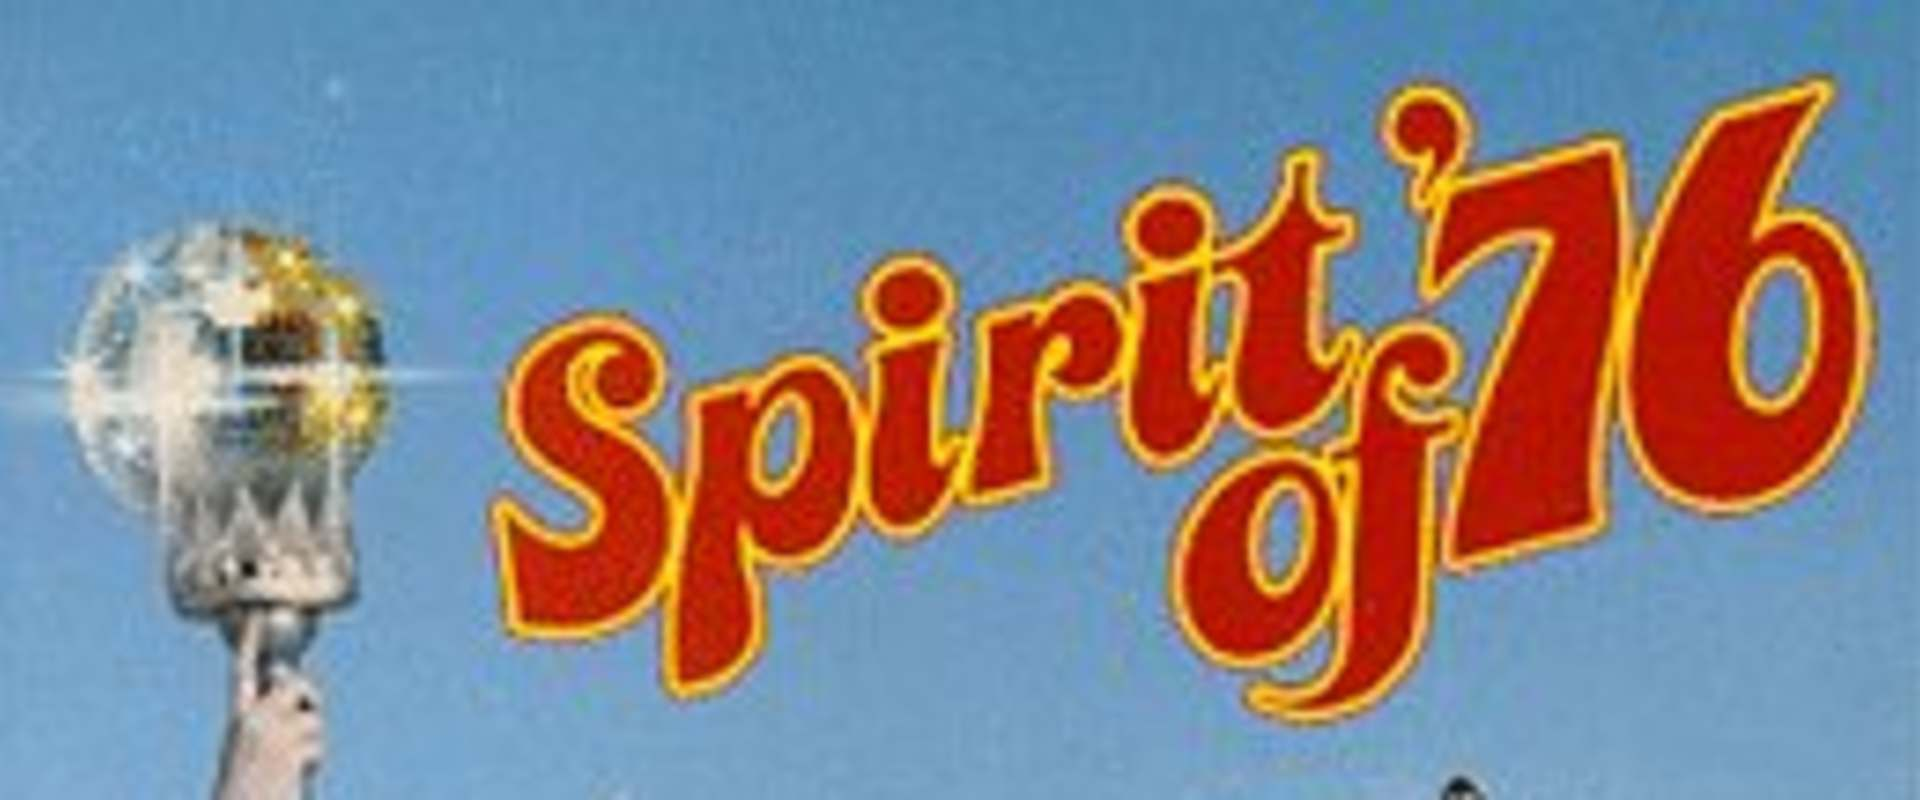 The Spirit of '76 background 1